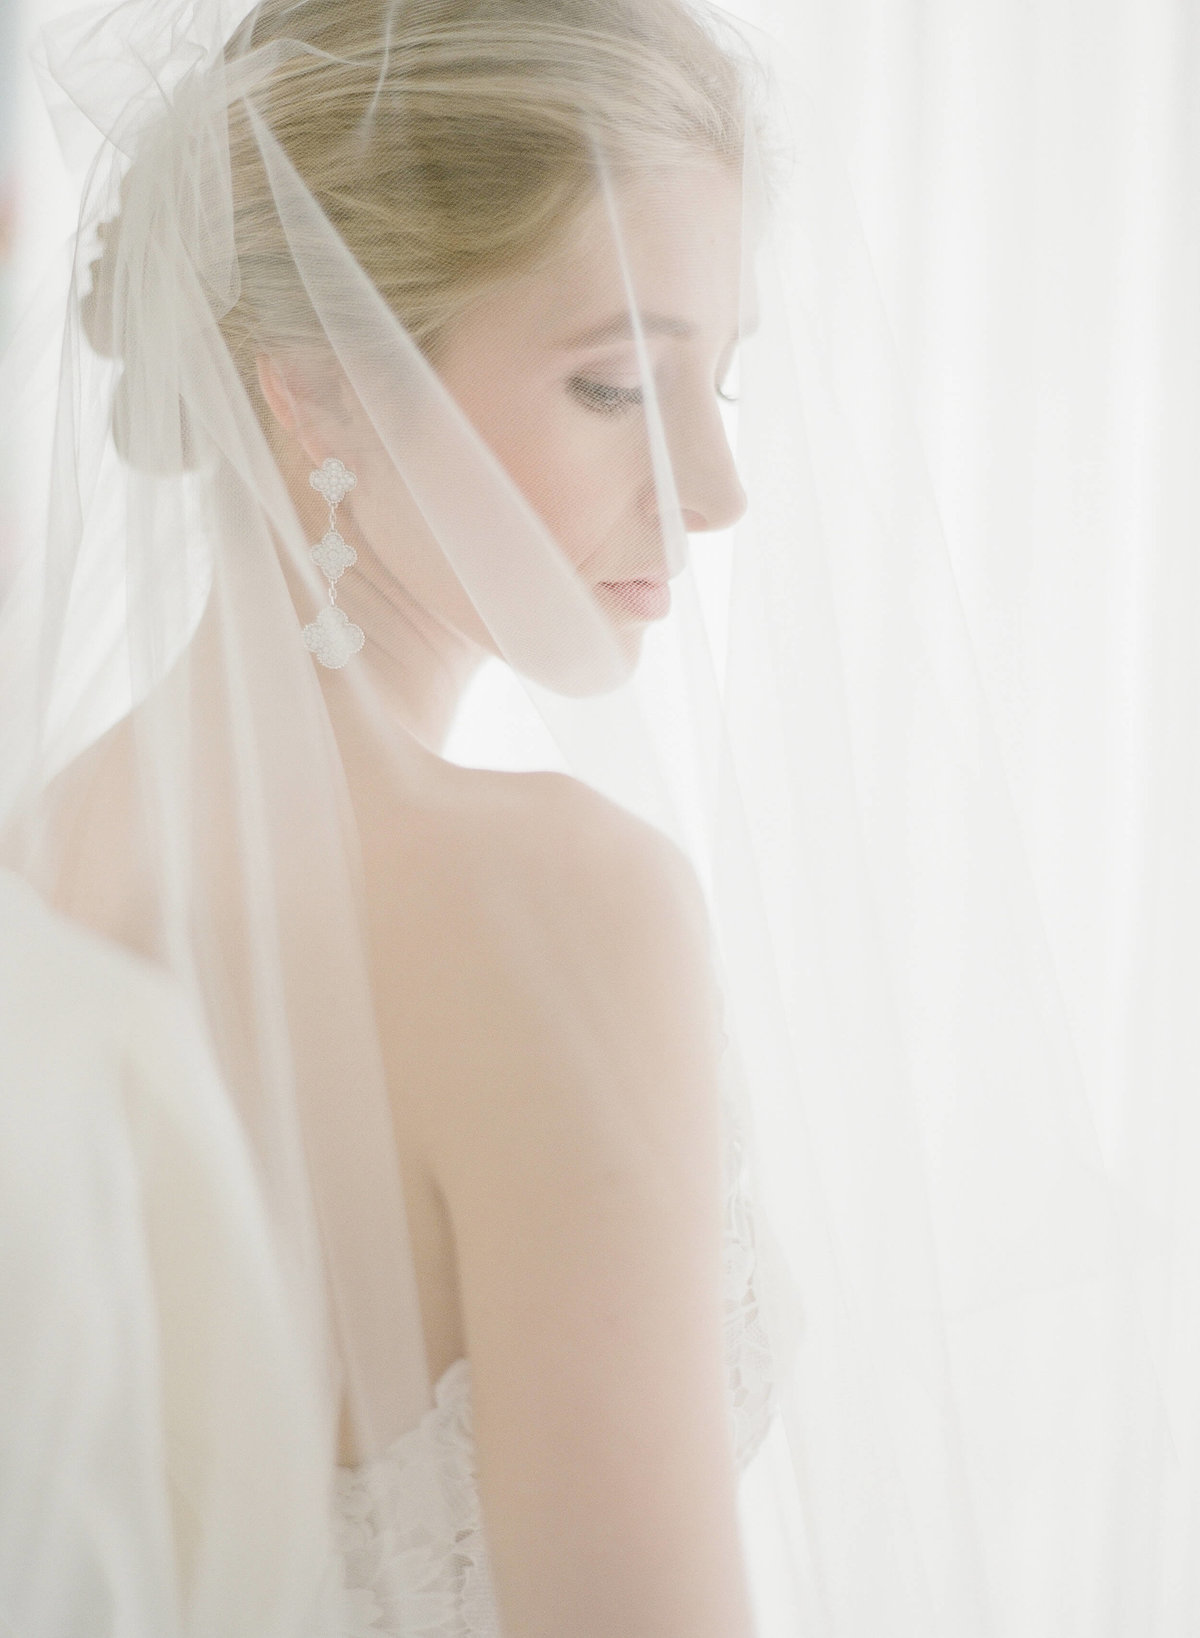 9-KTMerry-weddings-bridal-veil-portrait